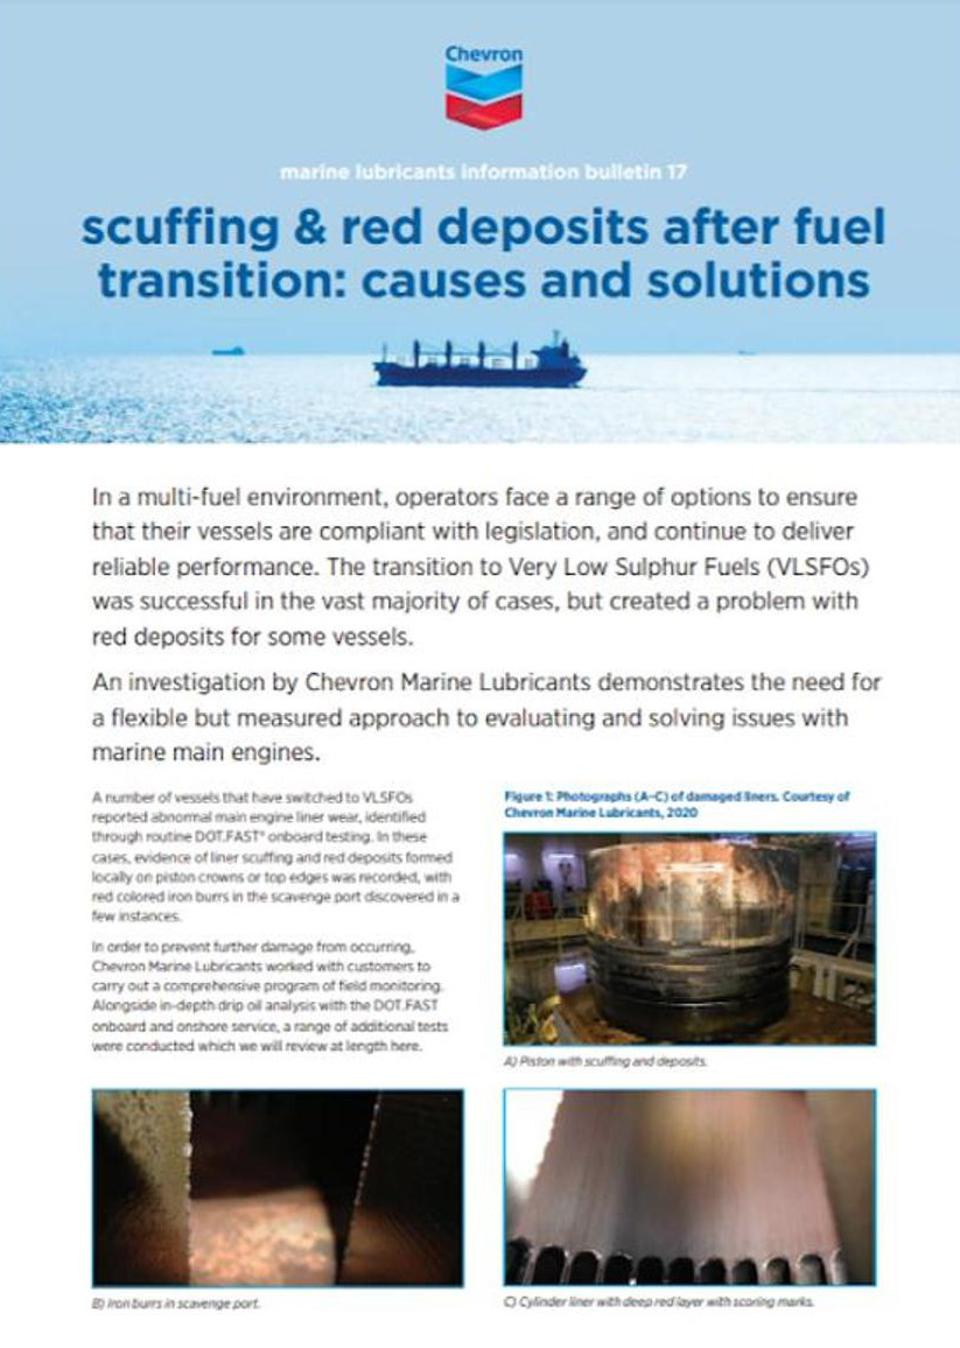 The Chevron Marine Lubricants Report that highlights the need for a flexible but measured approach to evaluating and solving issues with marine main engines